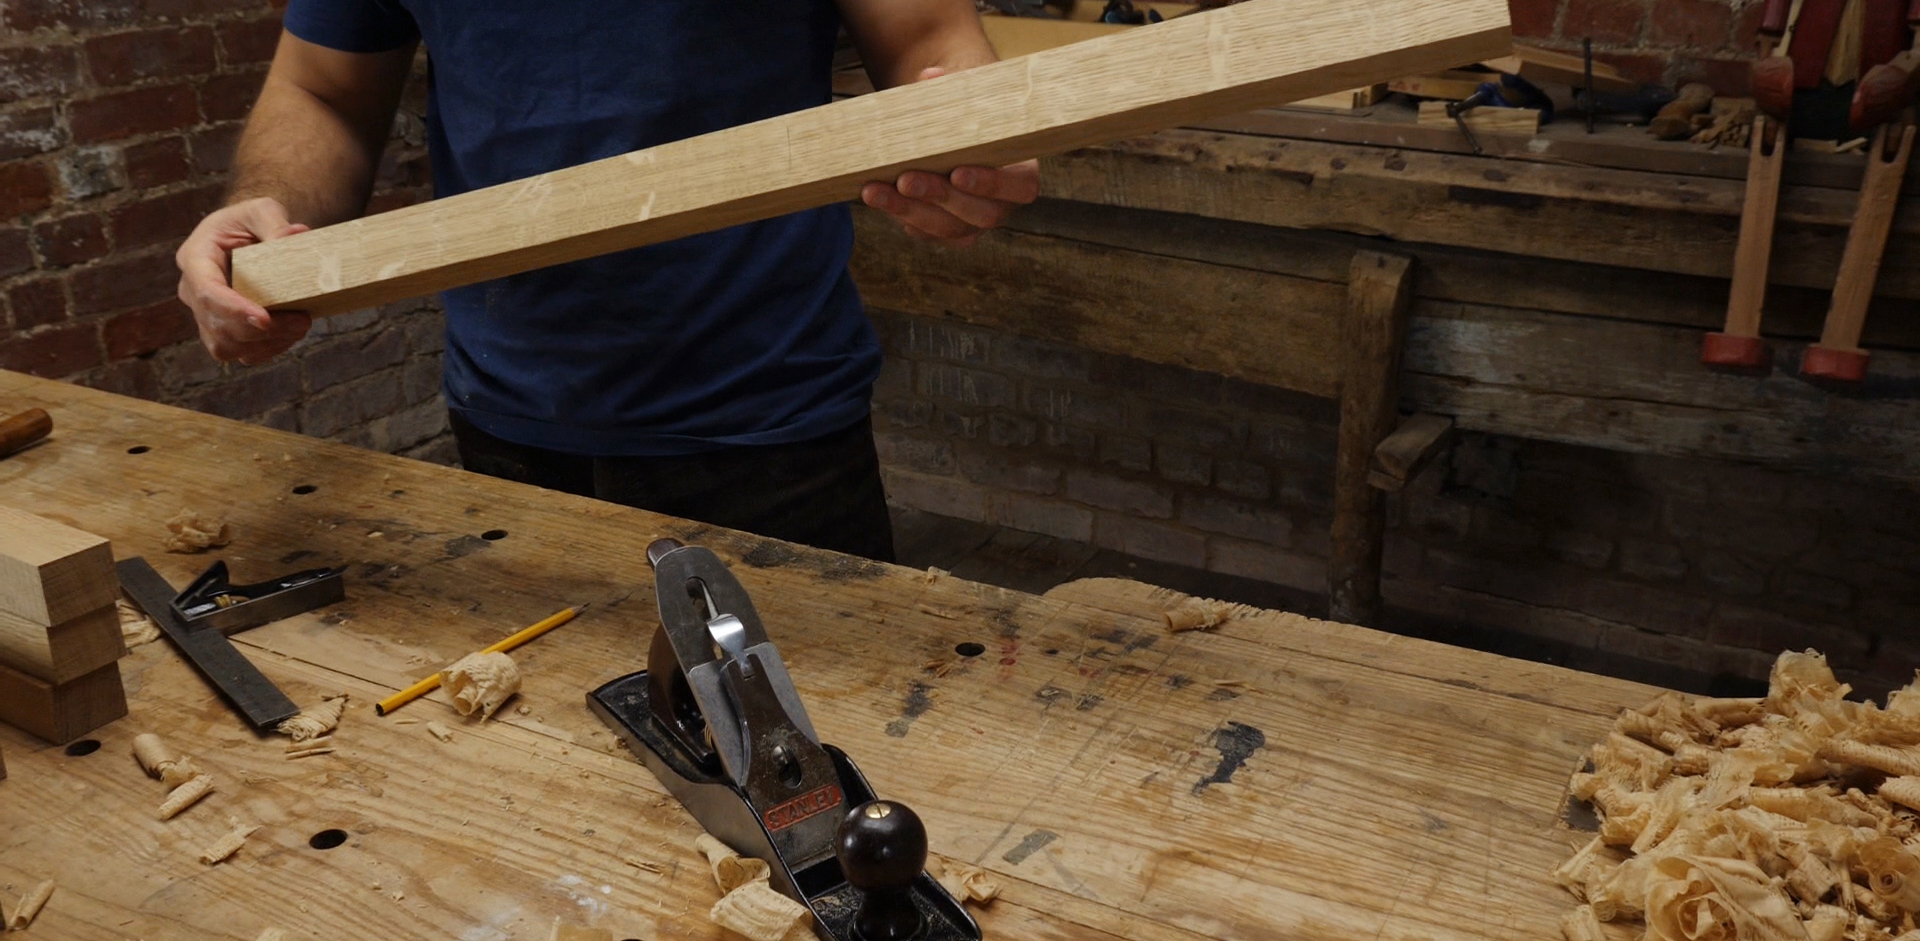 Work flow for woodworking - face vice position in front of the planing spike